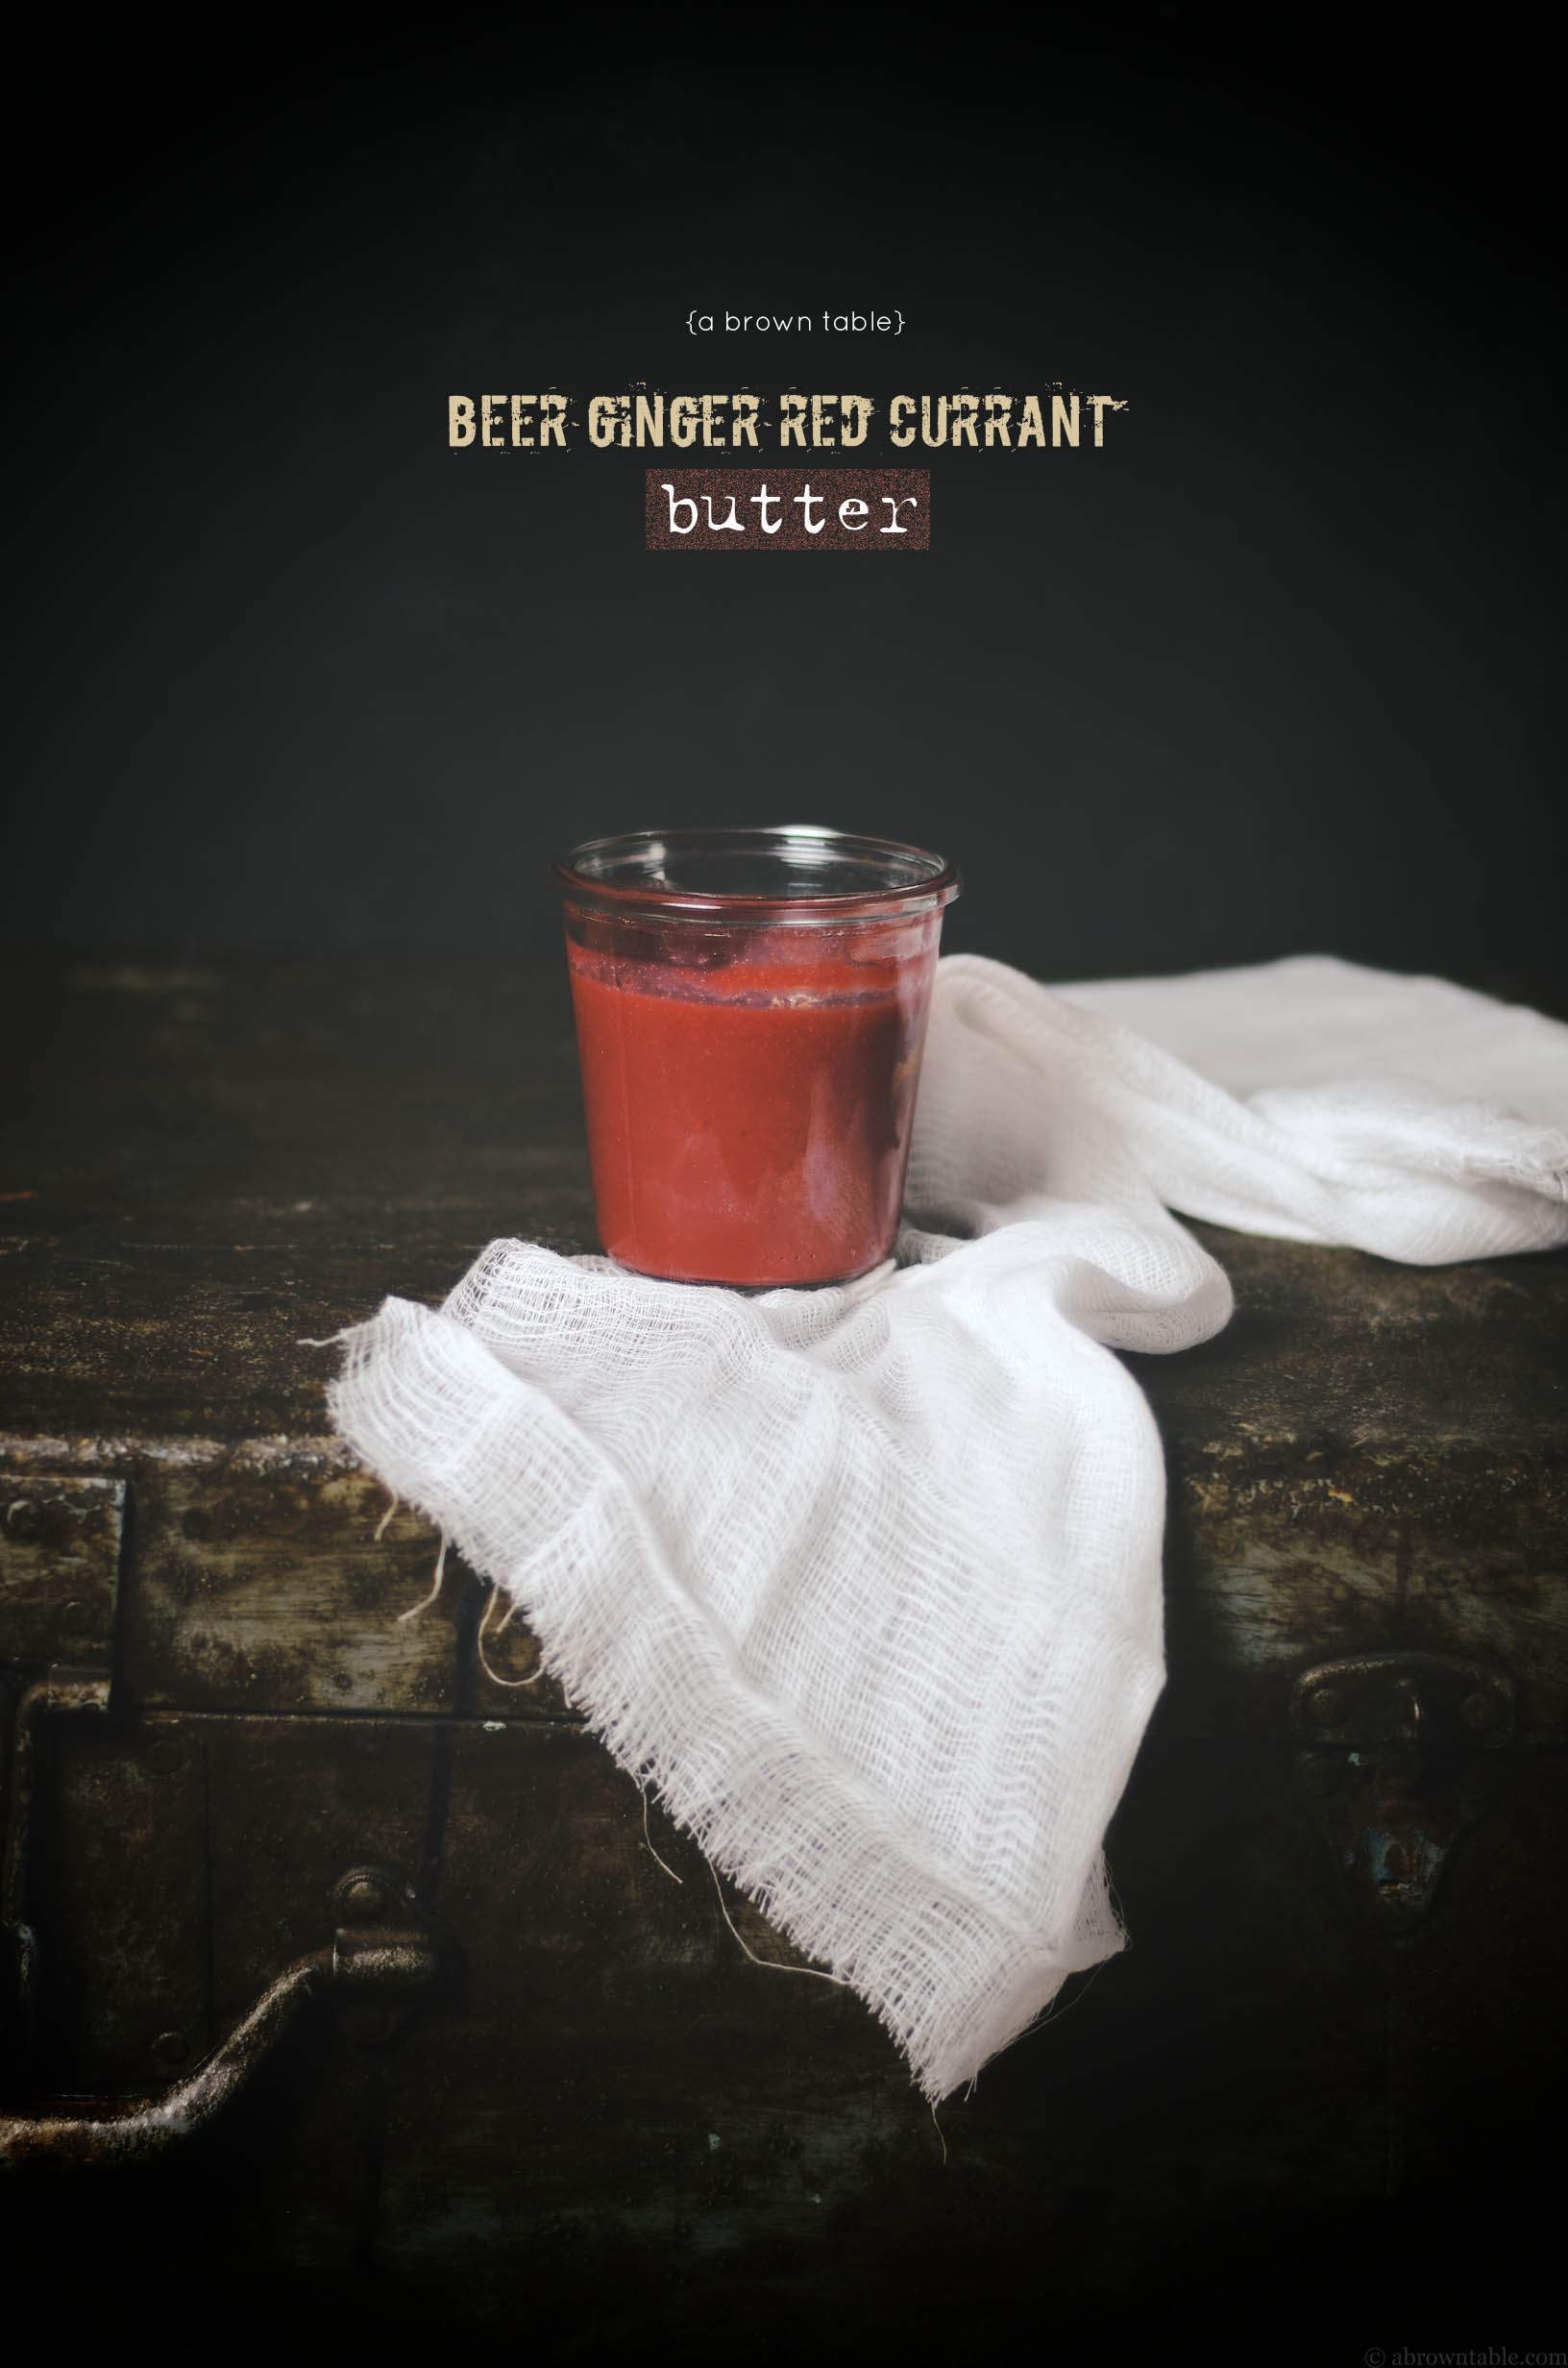 beer ginger red currant butter